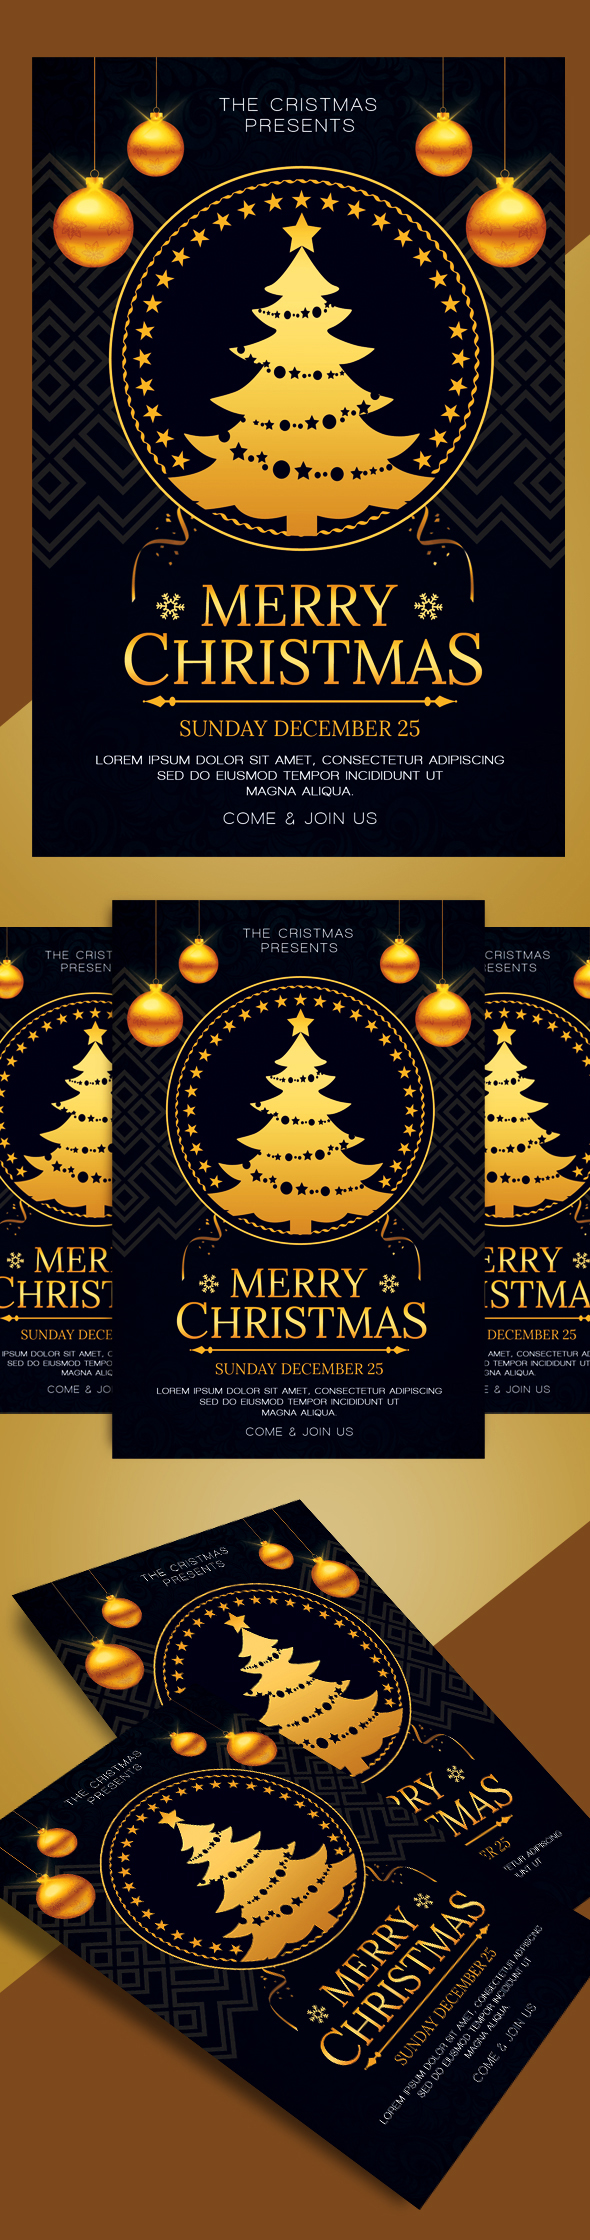 Christmas Flyer PSD template. Deatil : PSD files Full Layered Size ...